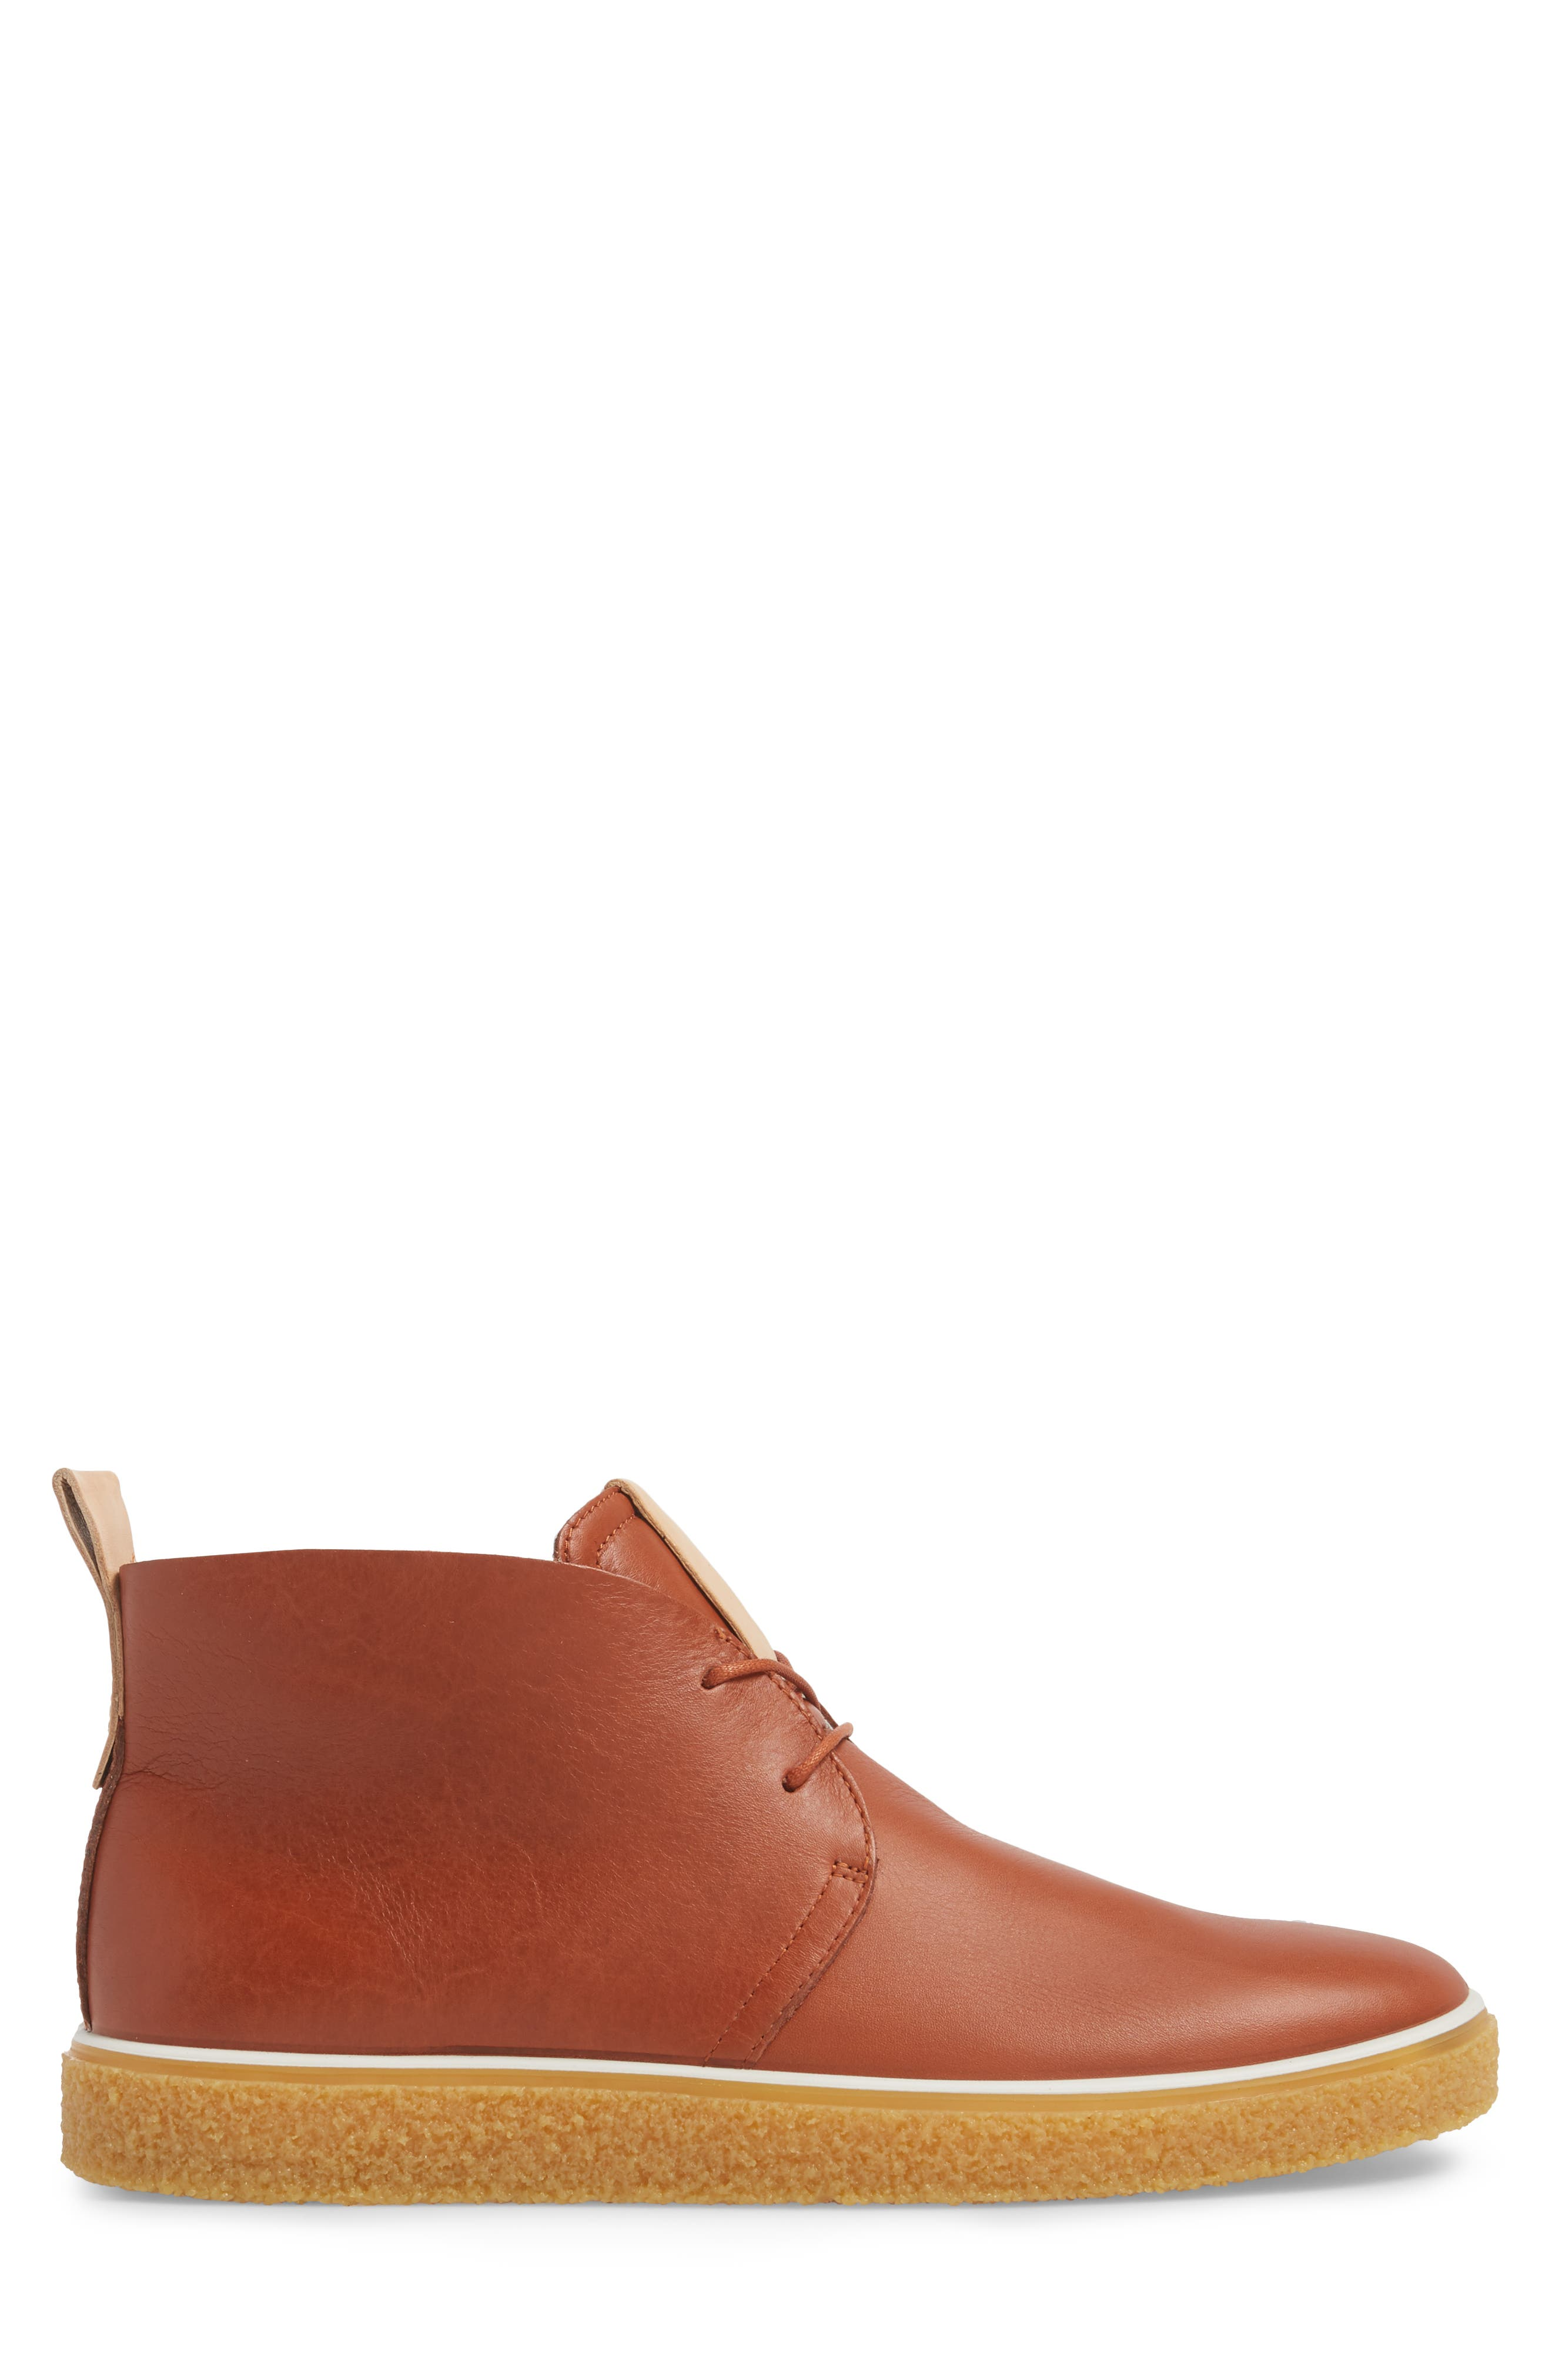 Crepetray Chukka Boot,                             Alternate thumbnail 3, color,                             Brandy Leather